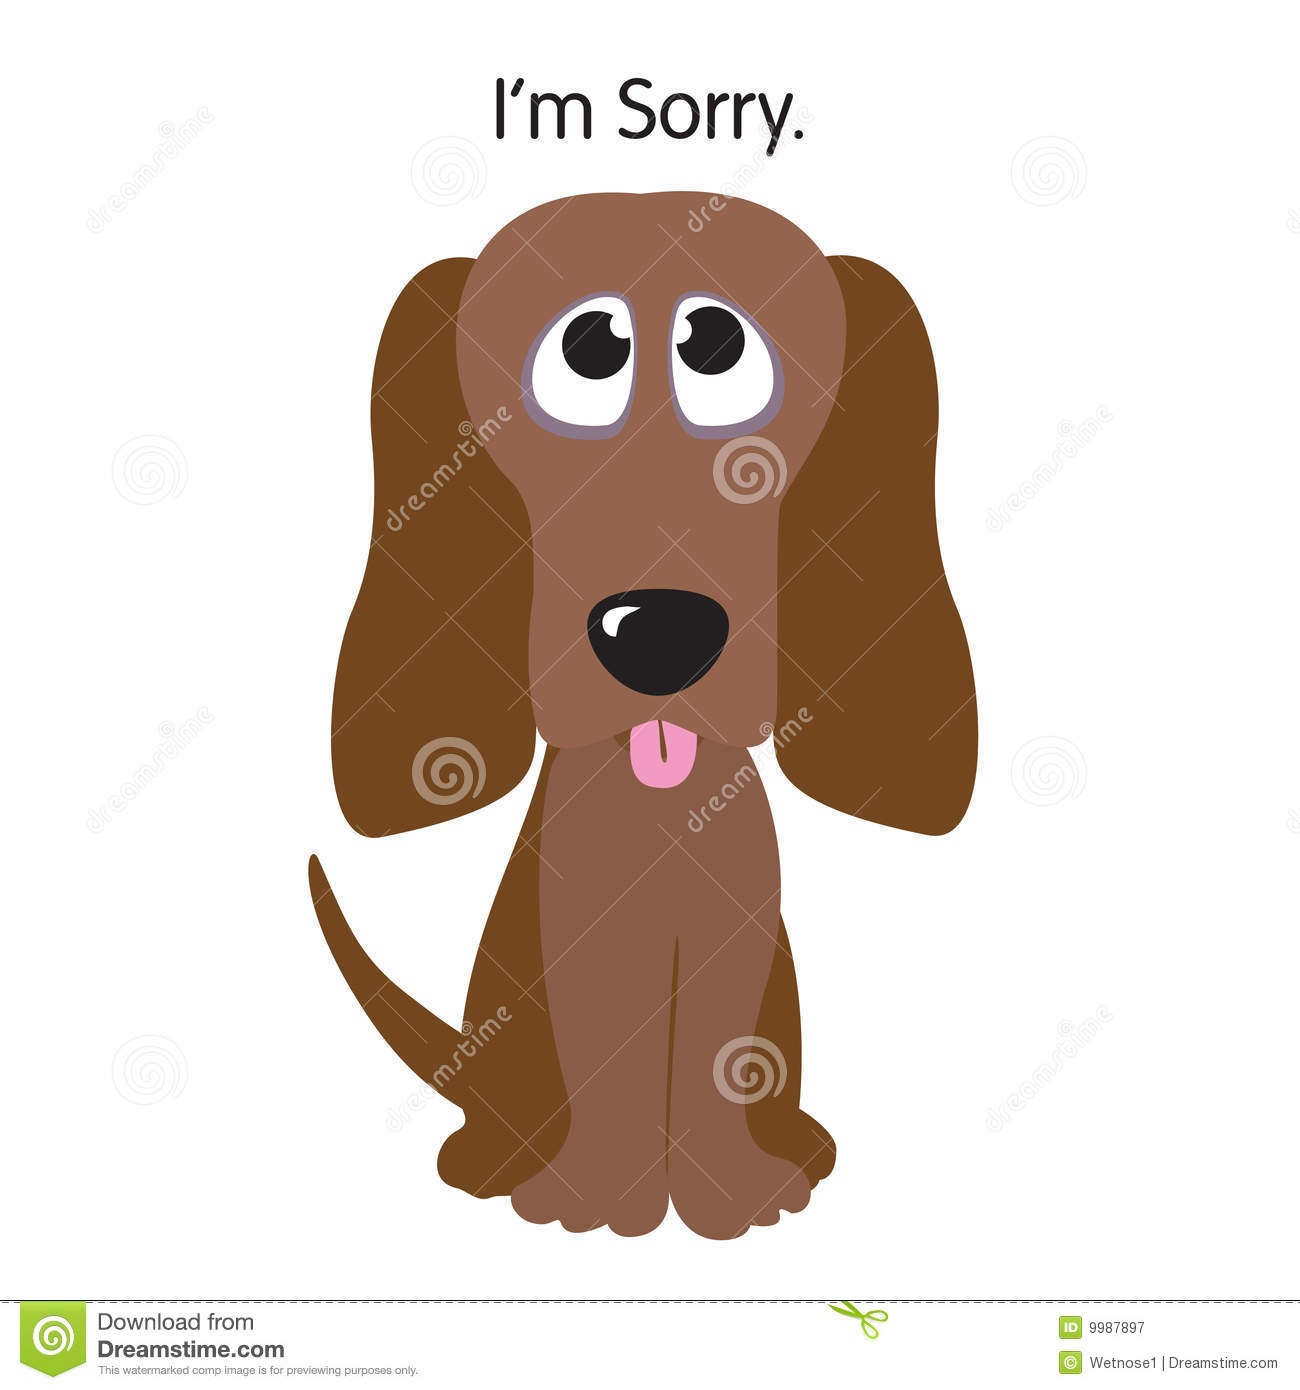 I'm Sorry Greeting Card Stock Vector. Illustration Of Being - 9987897 - Free Printable I Am Sorry Cards